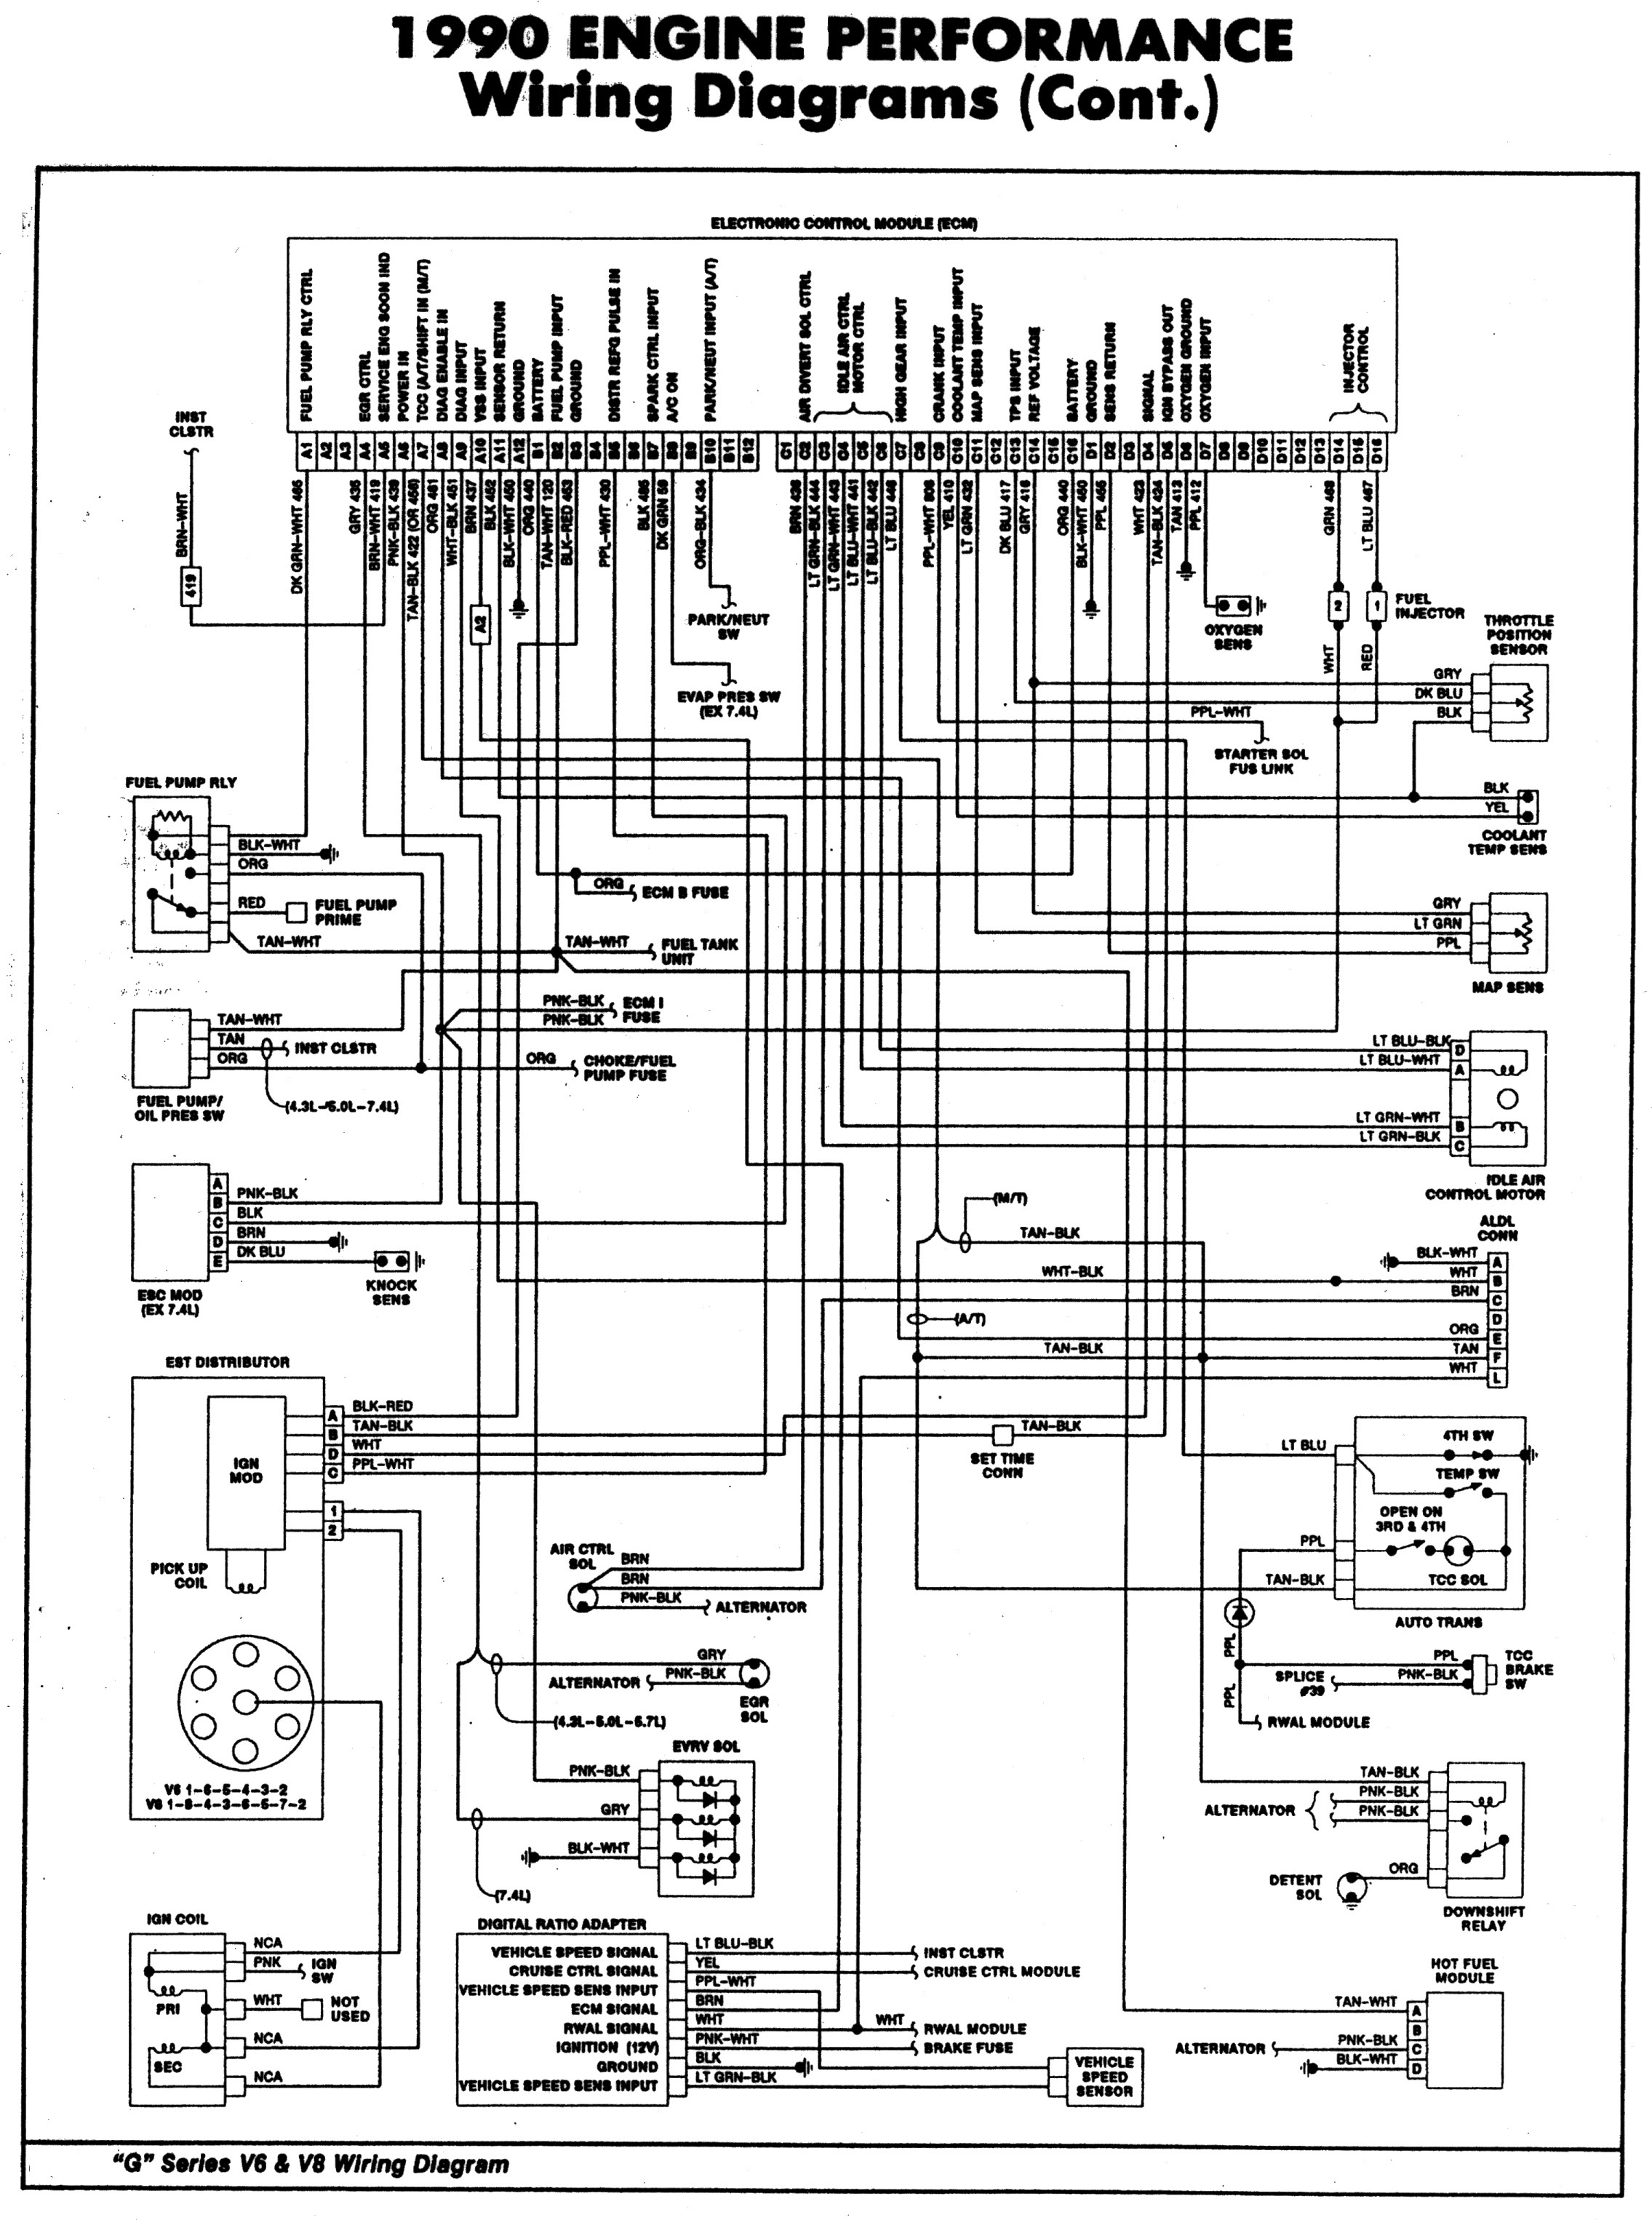 1991 gmc suburban wiring diagram schematic just wiring data rh ag skiphire  co uk